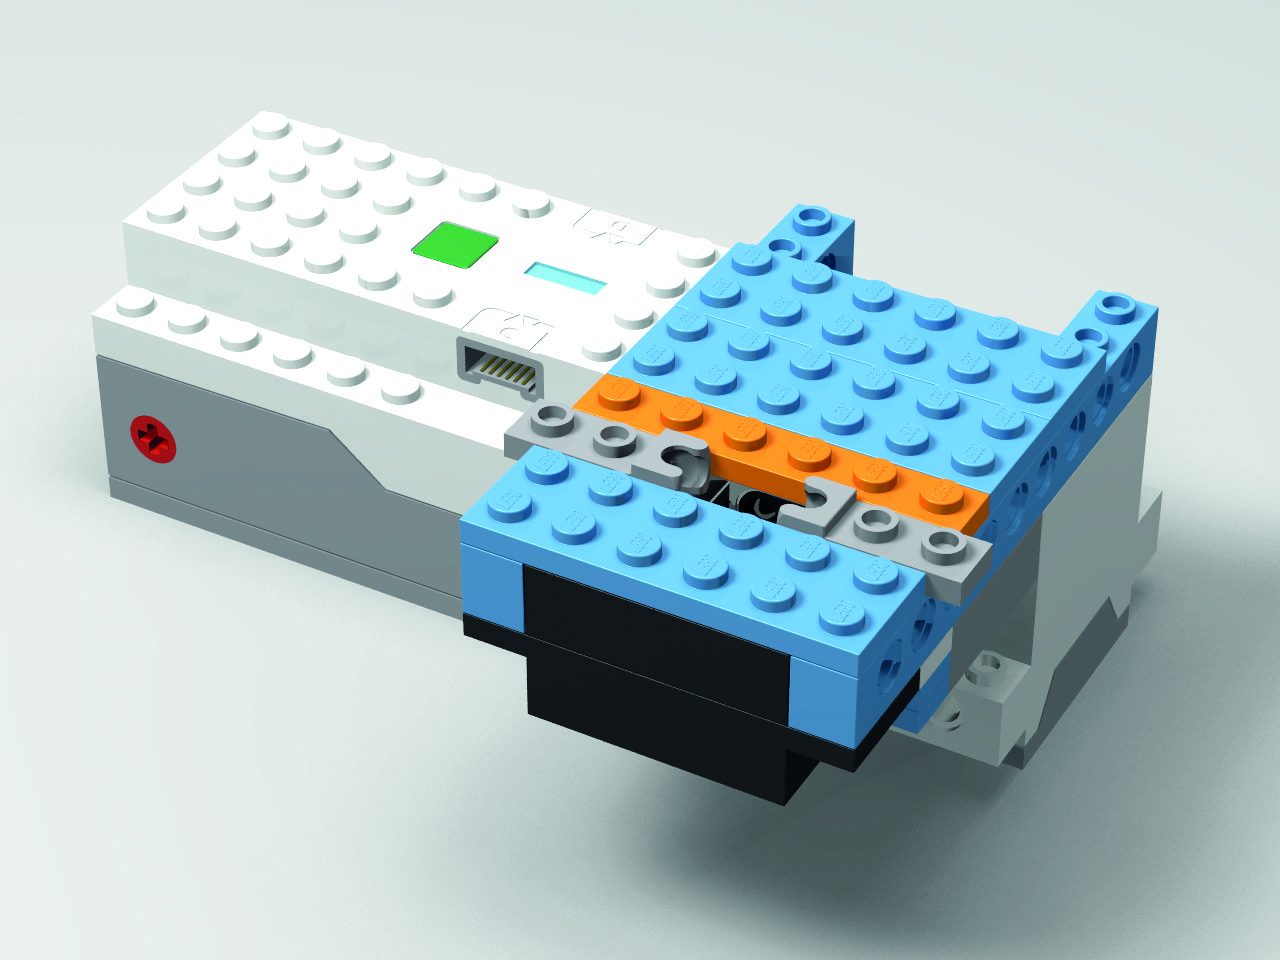 Three Lego Boost Raspberry Pi projects - The MagPi